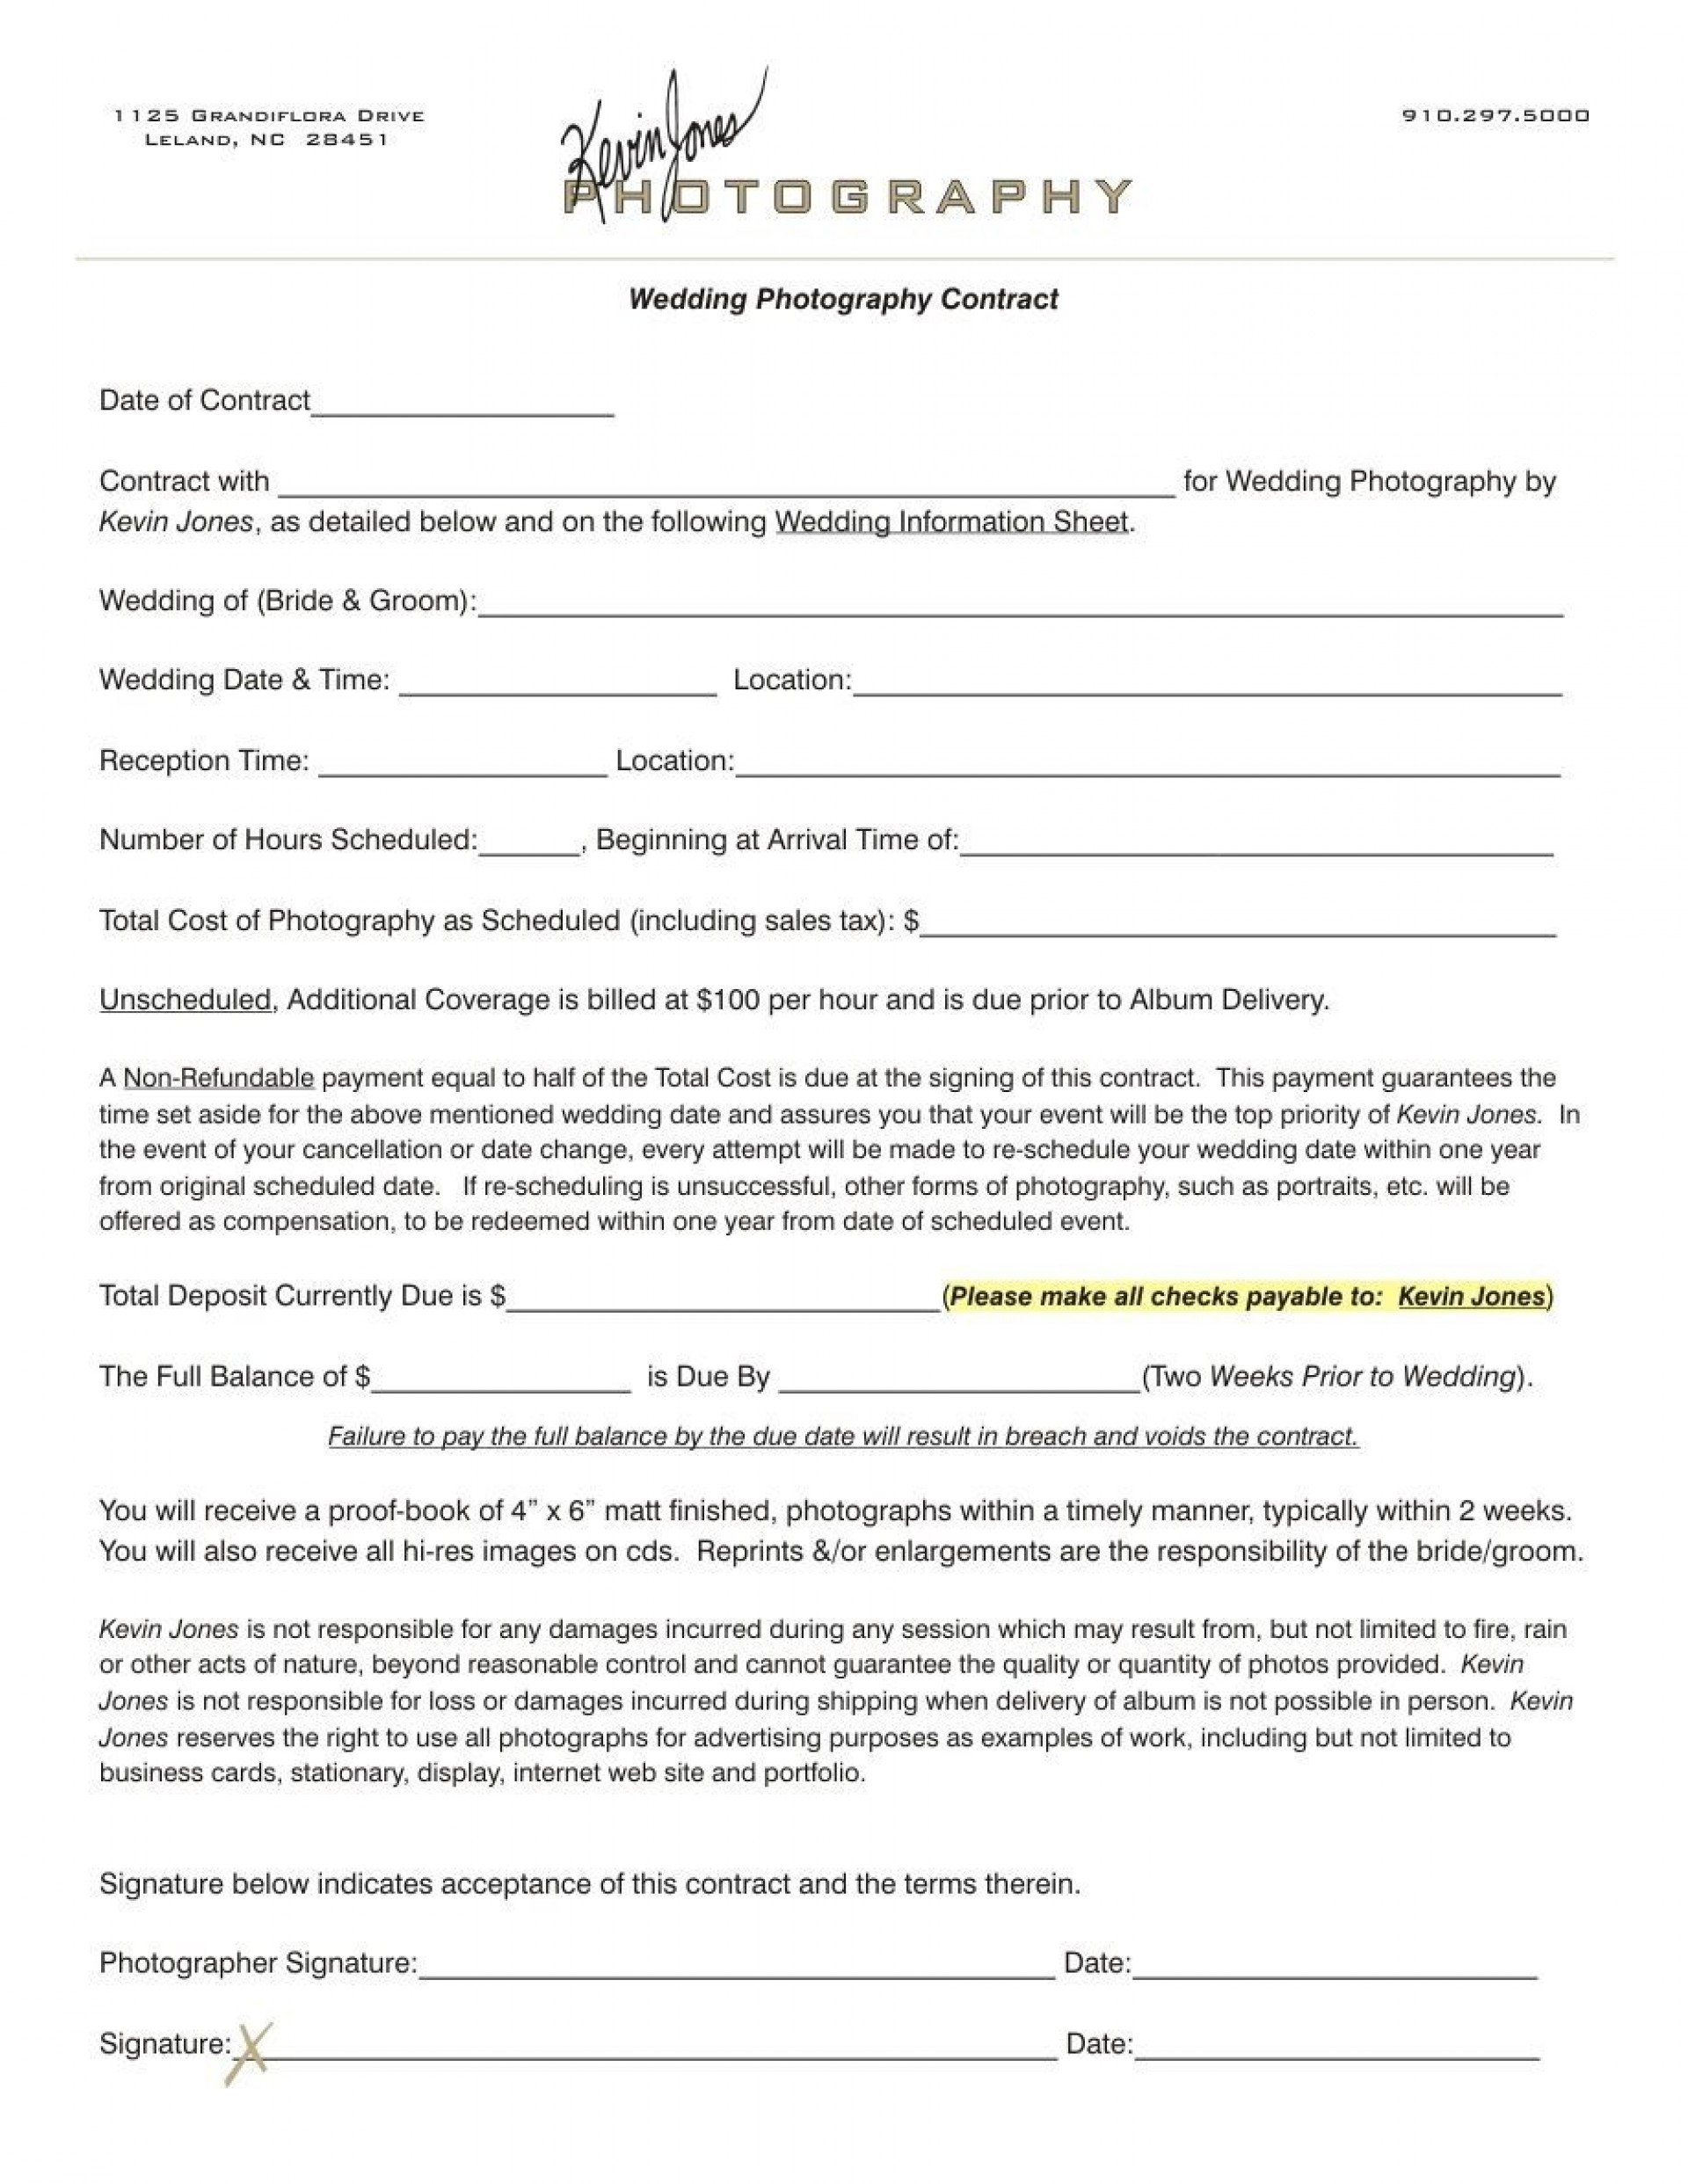 003 Outstanding Wedding Photographer Contract Template Free High Definition  Simple Photography Word1920